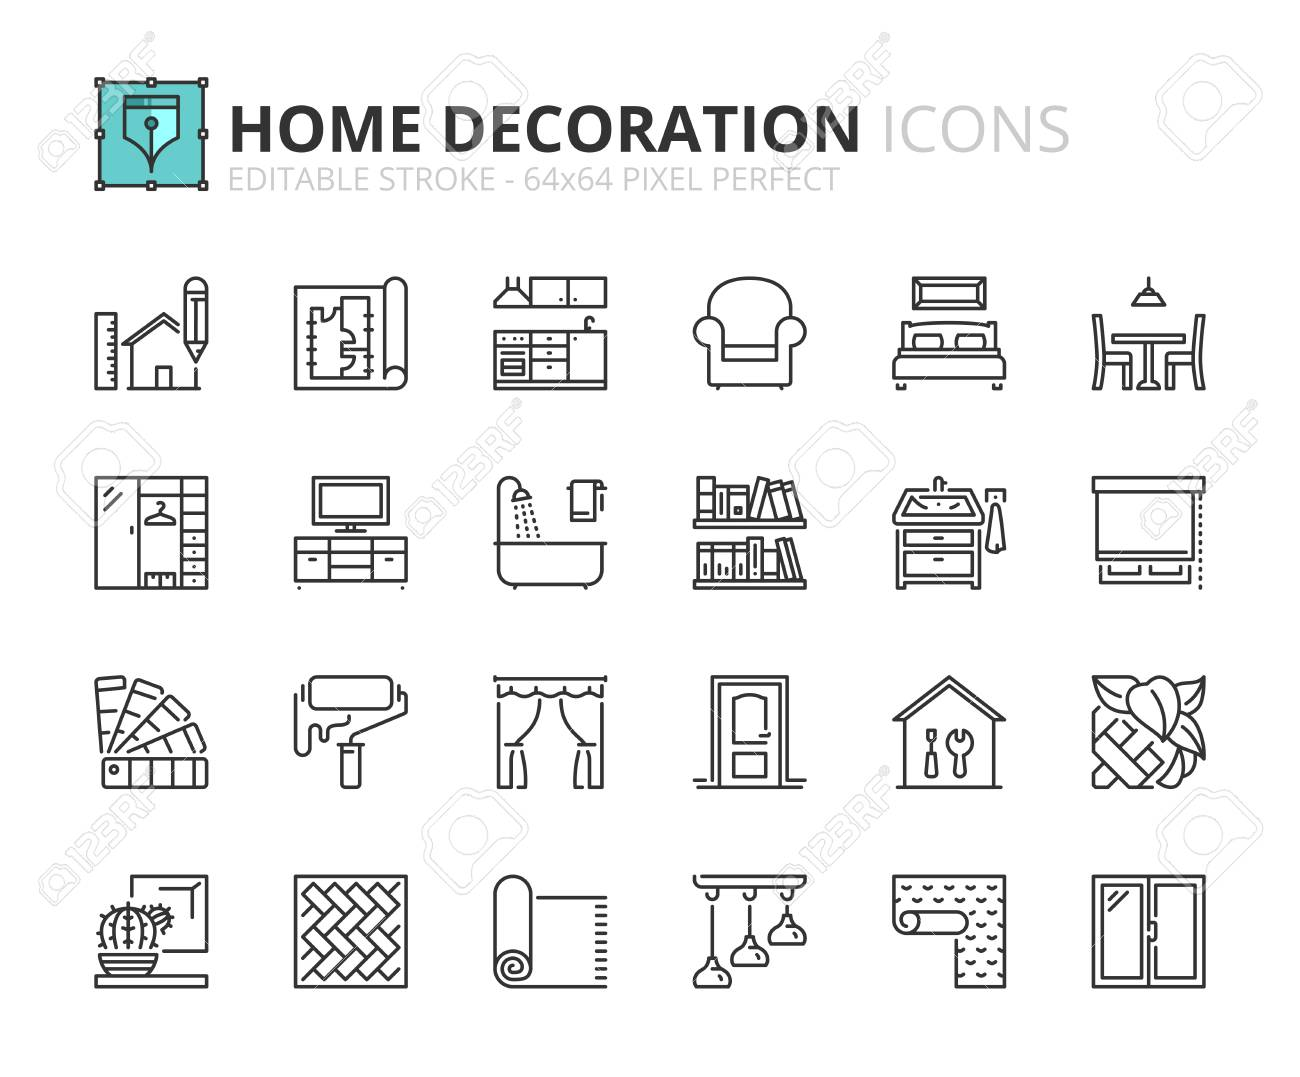 Outline icons about home decoration  Editable stroke  64x64 pixel